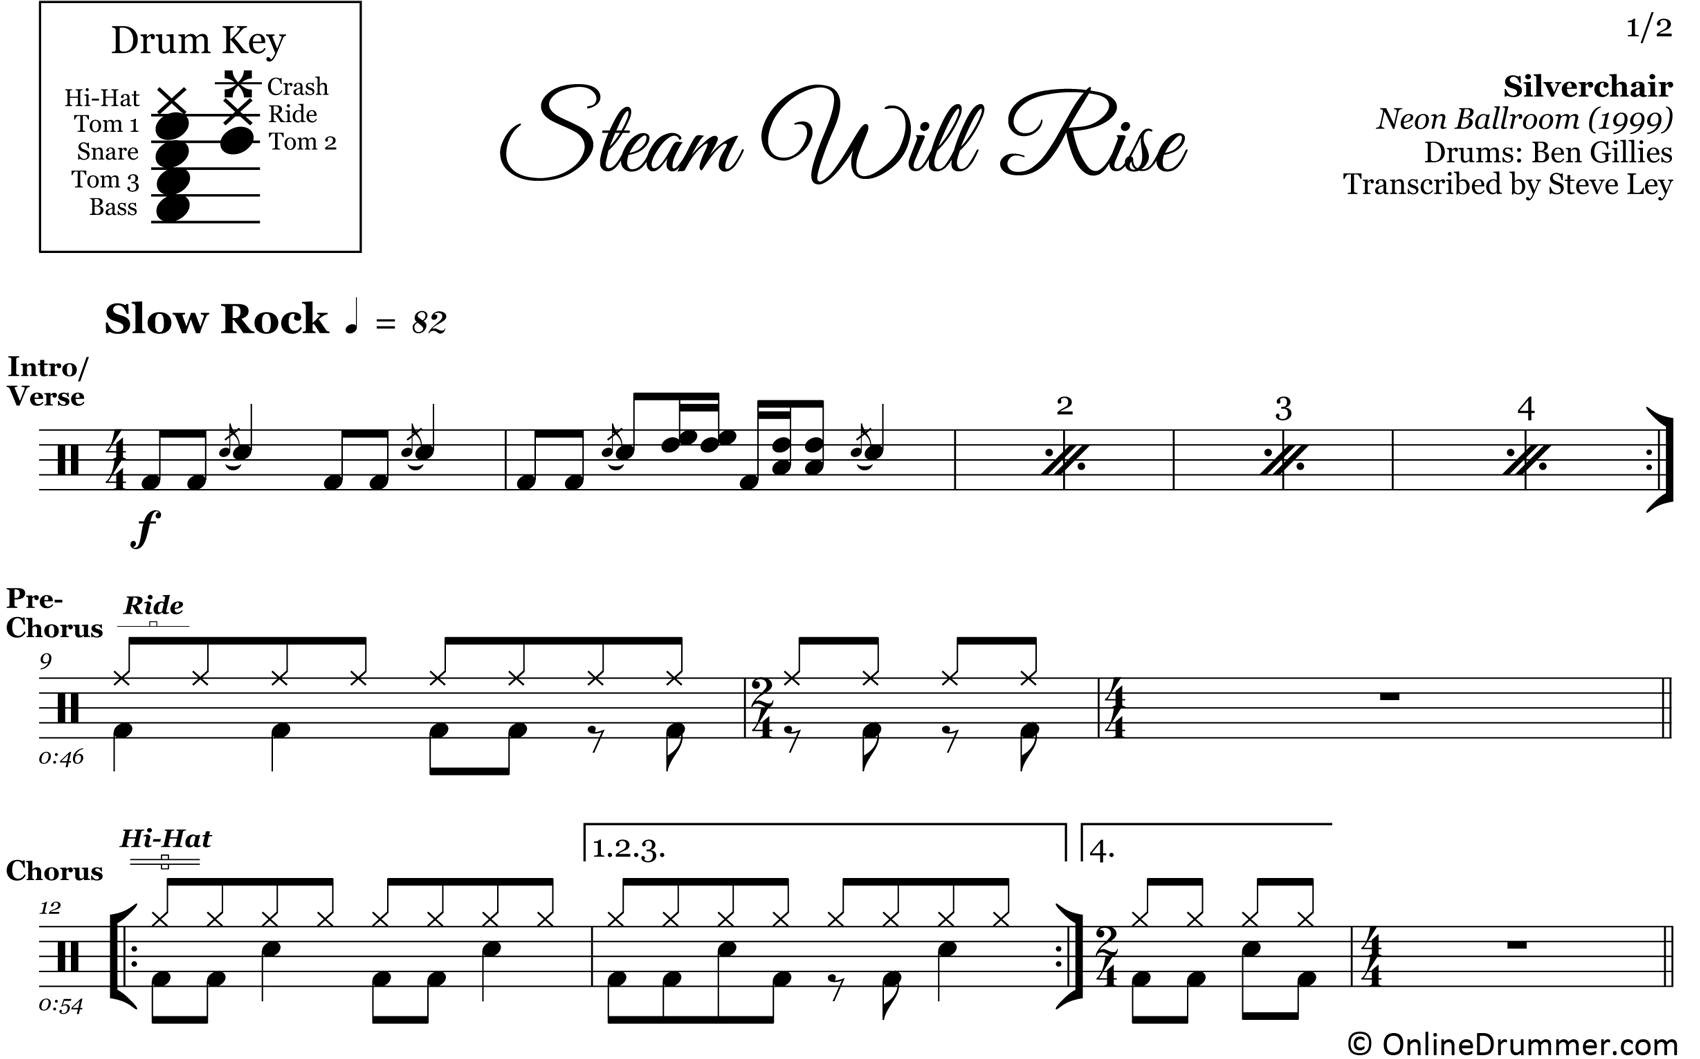 Steam Will Rise - Silverchair - Drum Sheet Music